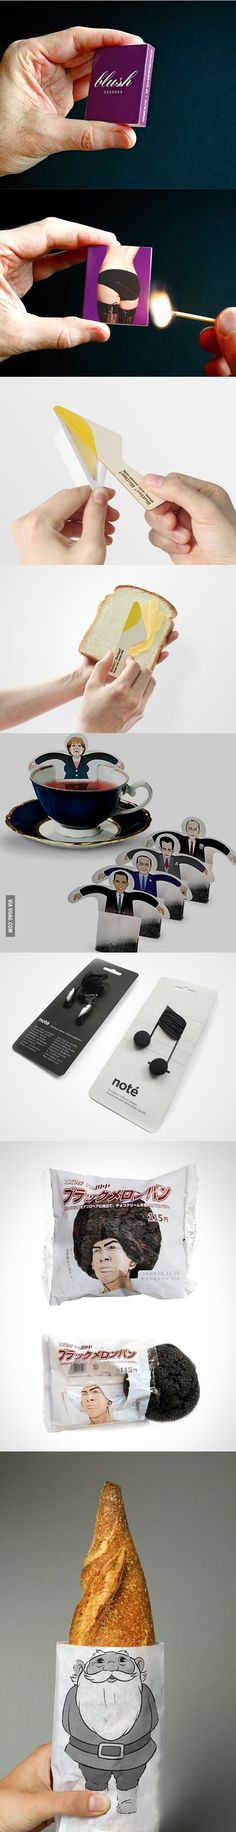 Clever packaging